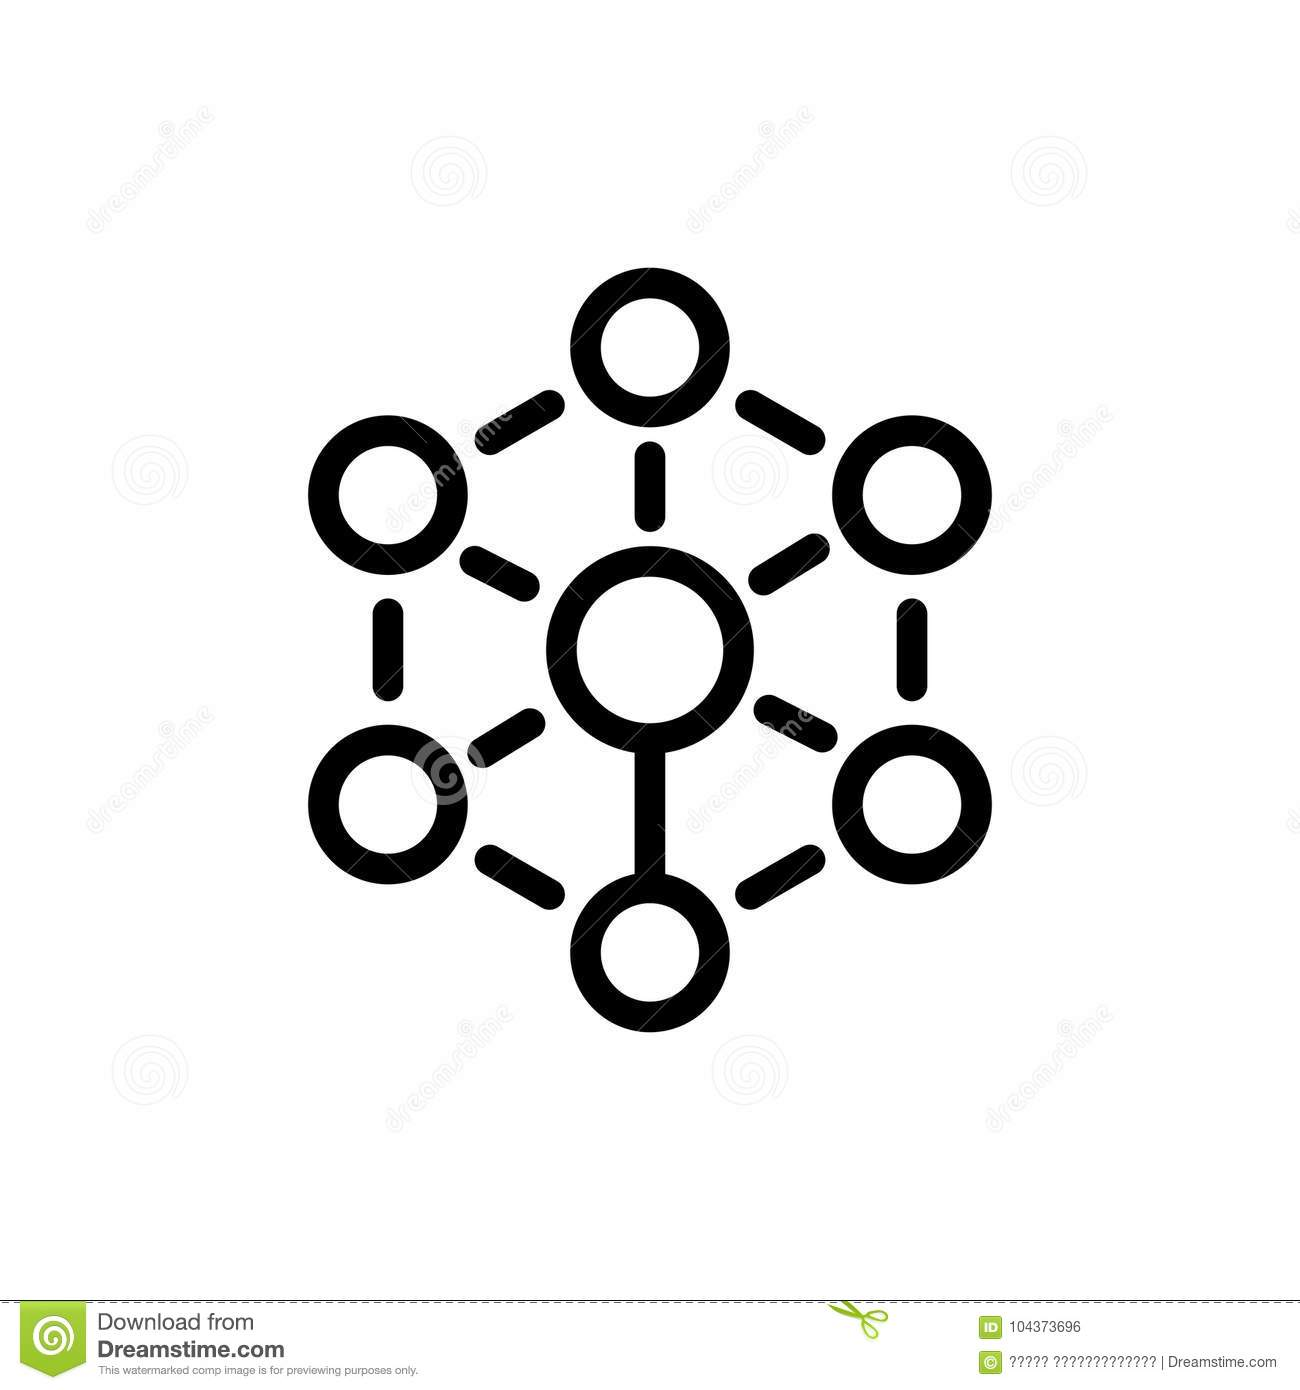 Diagram Flat Icon Stock Vector Illustration Of Hierarchy